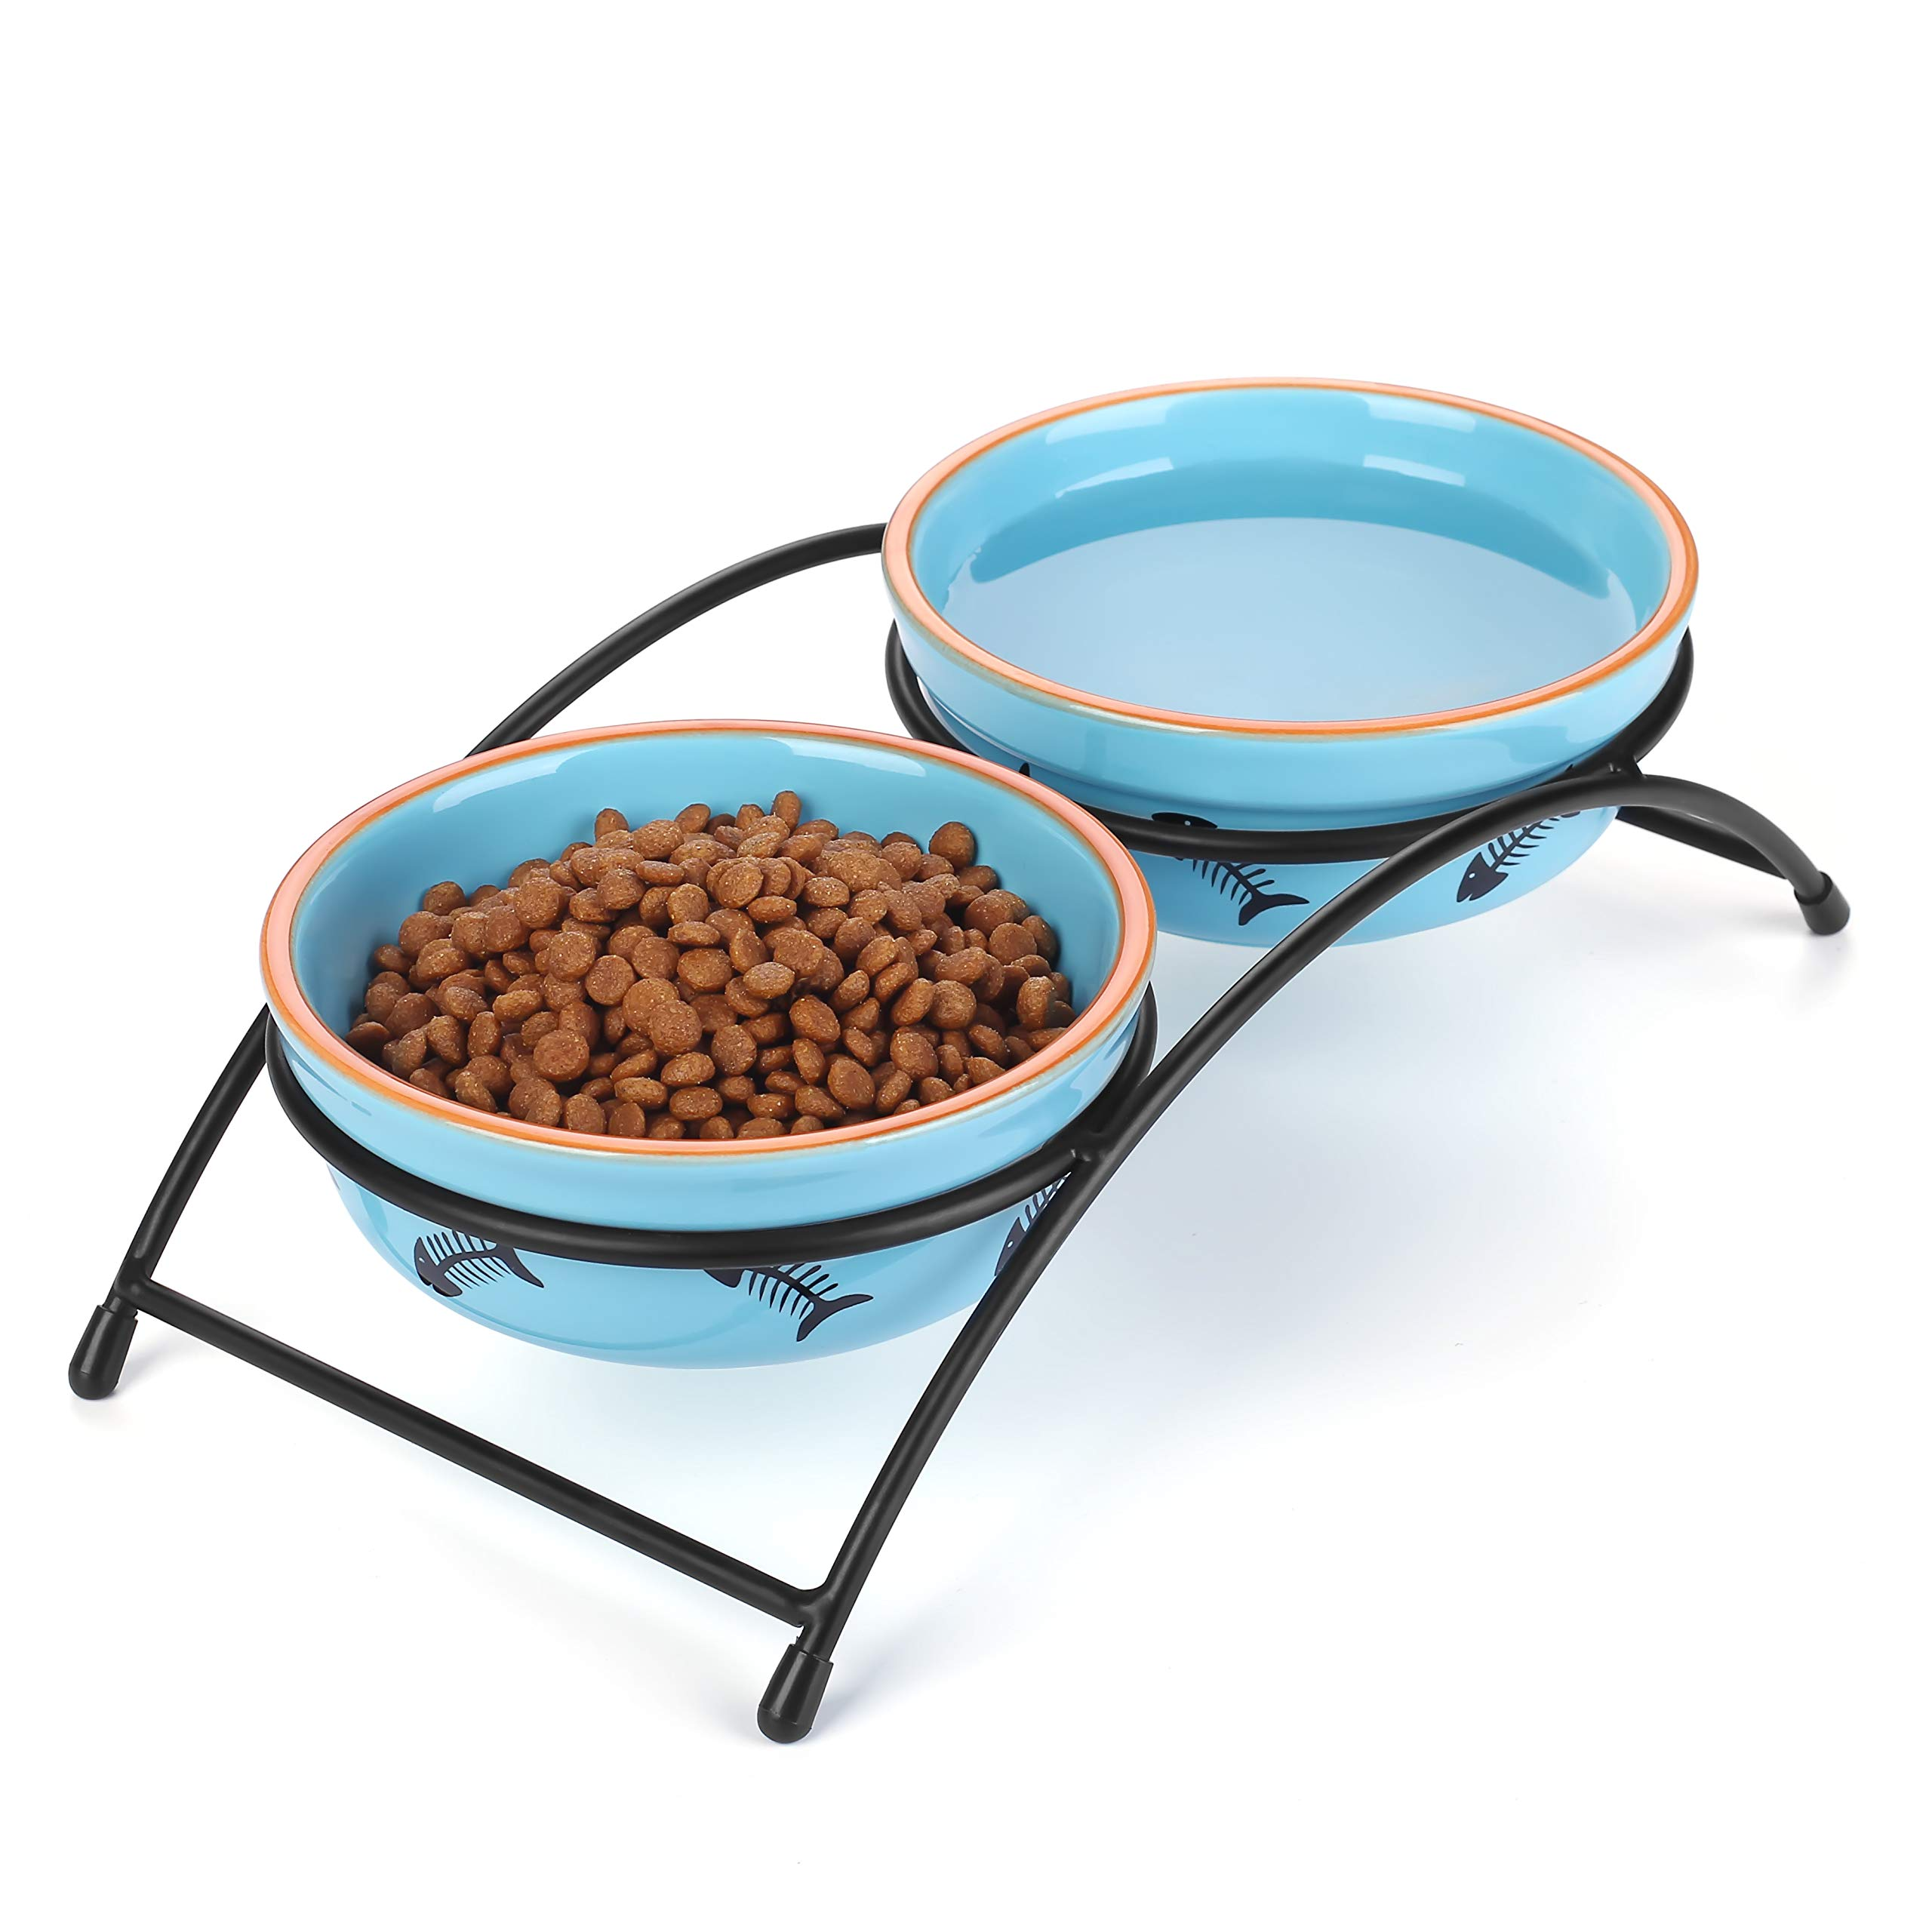 Y YHY Ceramic Raised Pet Cat Bowls, 12 Ounces Elevated Food or Water Bowls, Double Cat Dishes, Gift for Cat, Fish Bone Design, Blue by Y YHY